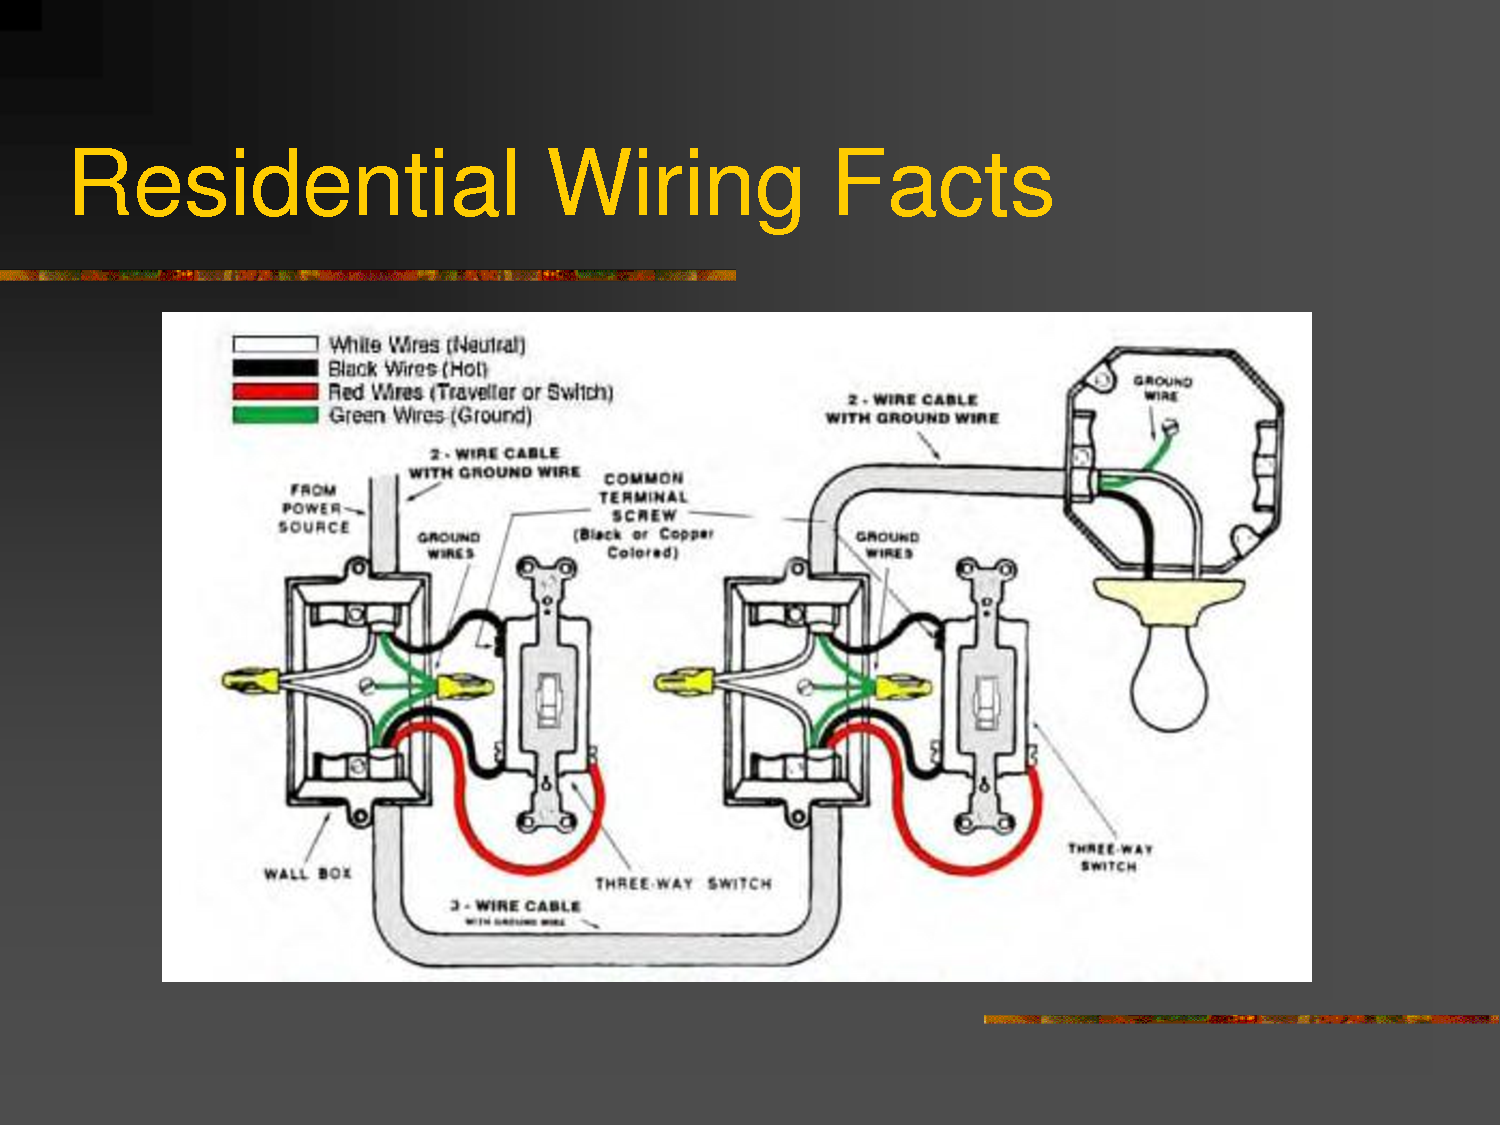 canadian built smart car wiring diagrams wiring library4 best images of residential wiring diagrams house electrical [ 1500 x 1125 Pixel ]